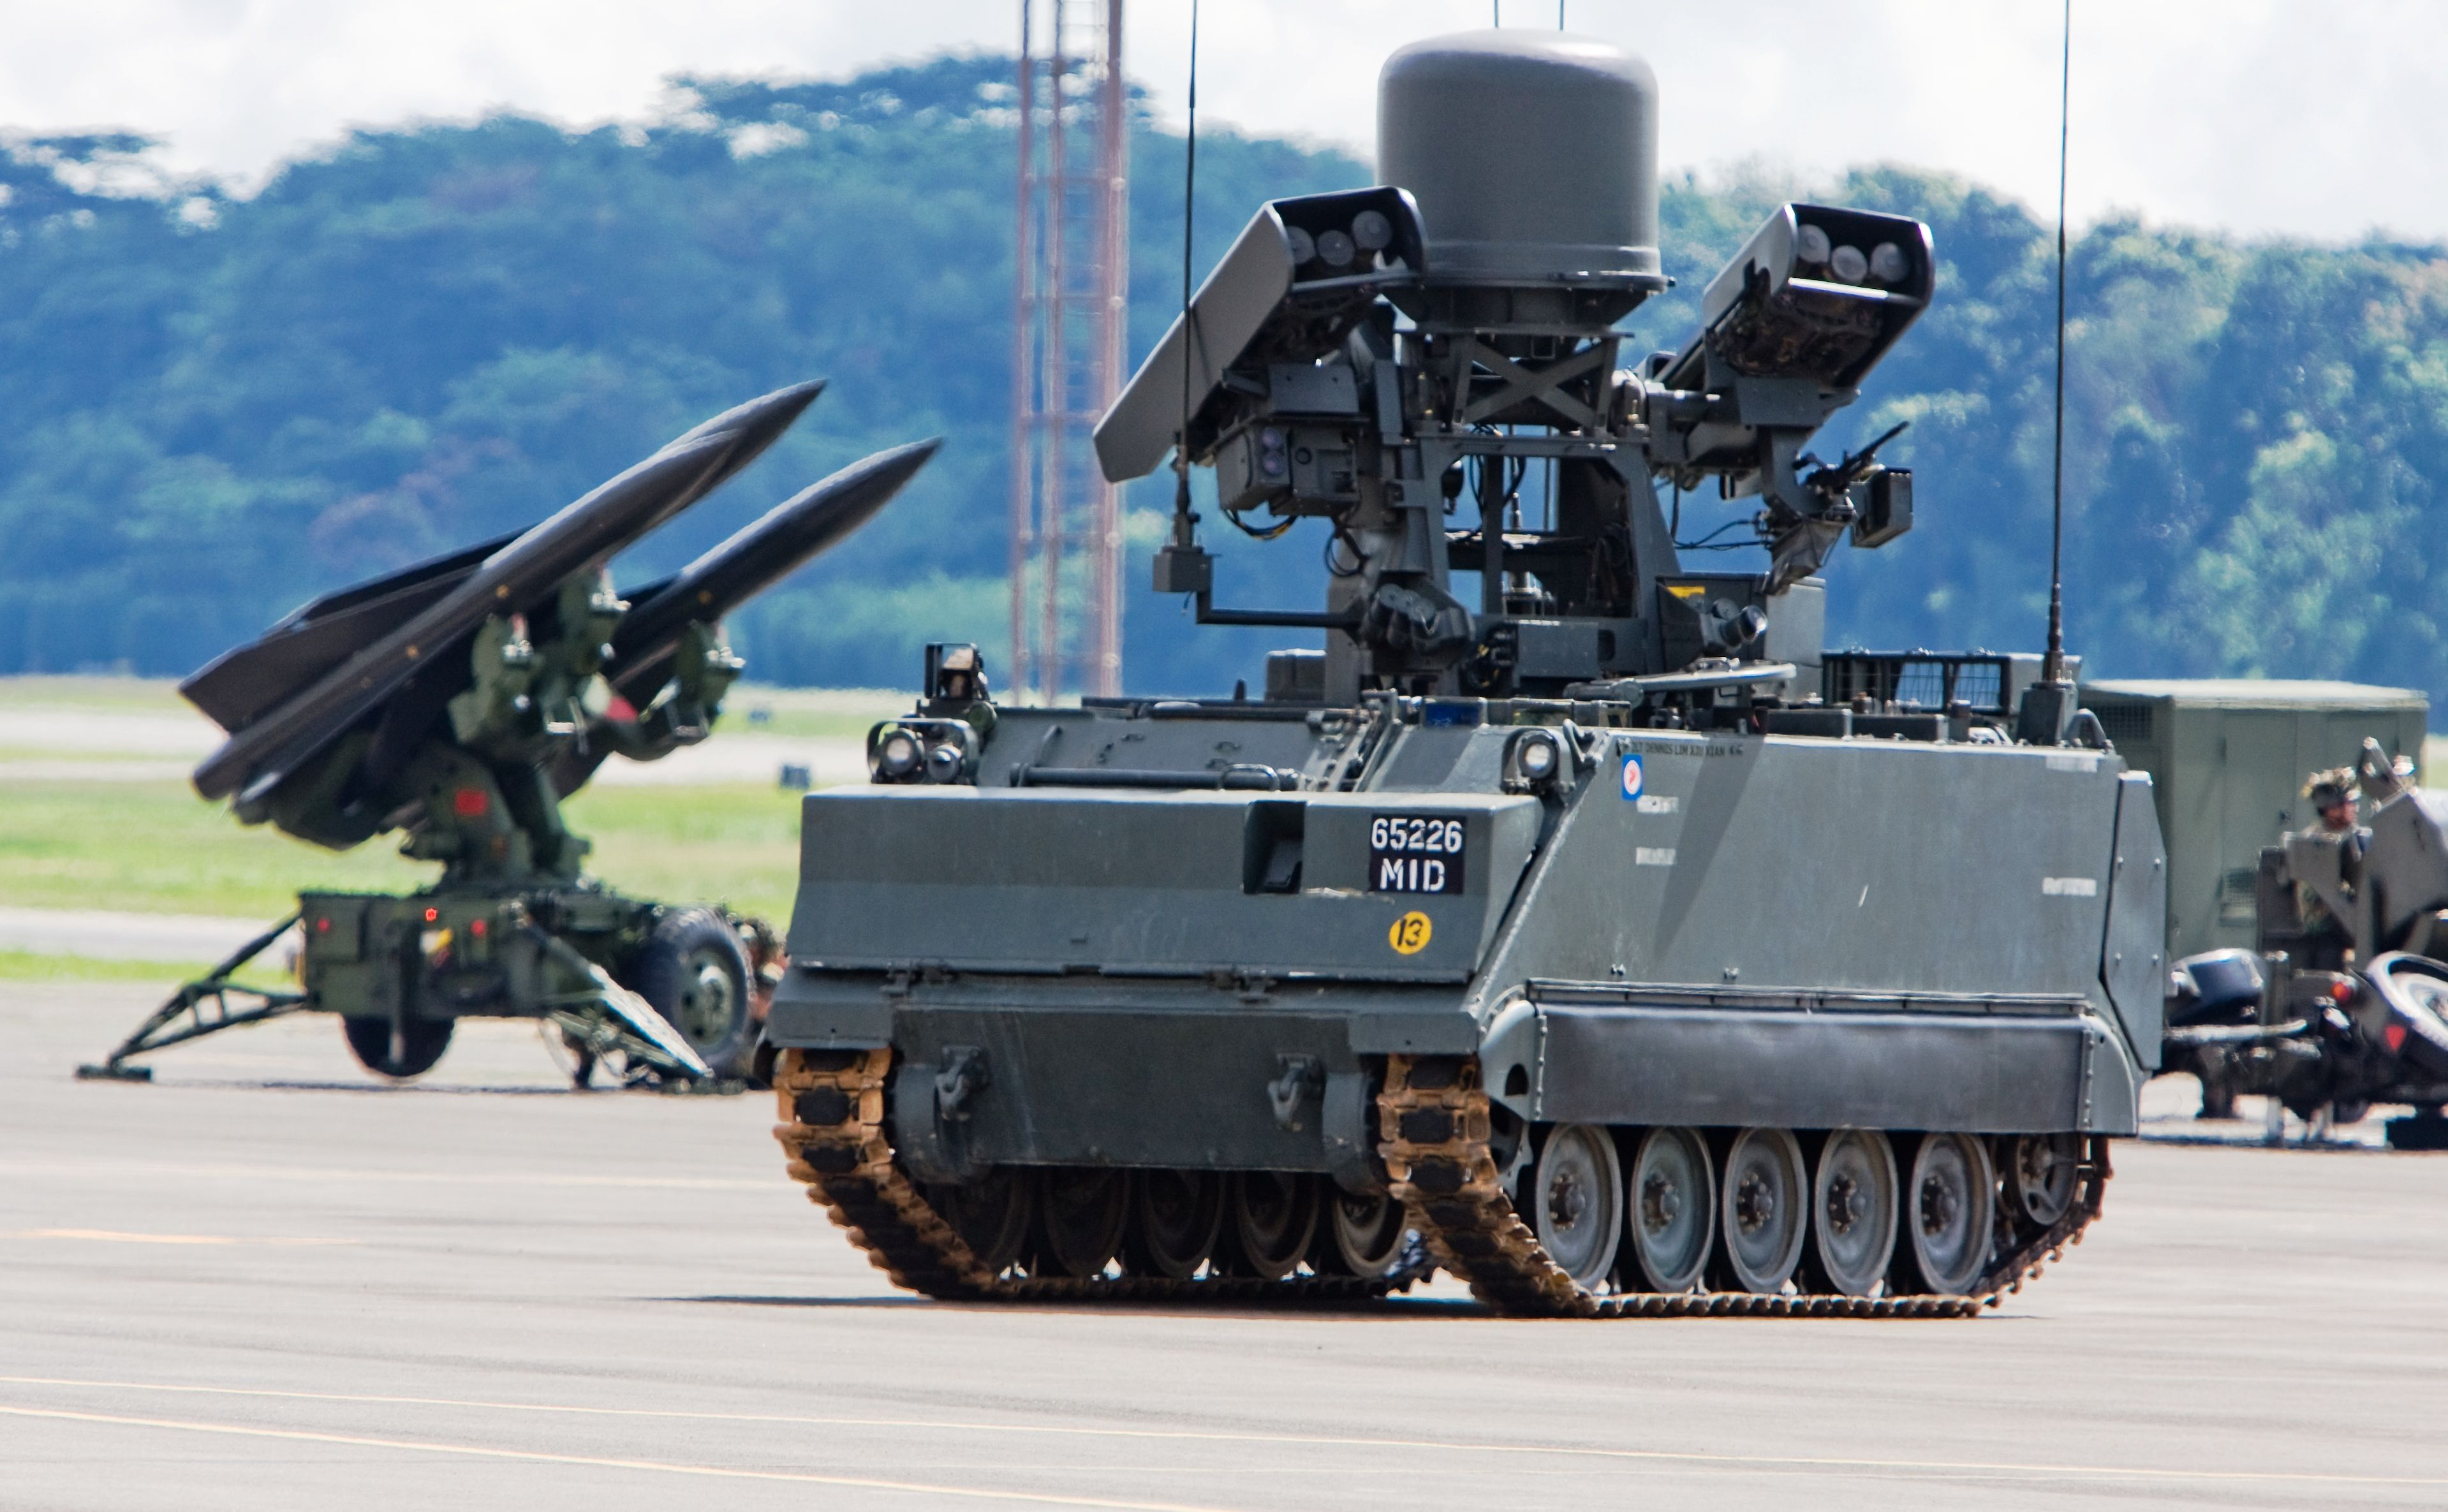 M113A2 Ultra Mechanised Igla Short-Range Surface-to-Air Missile (Singapore)